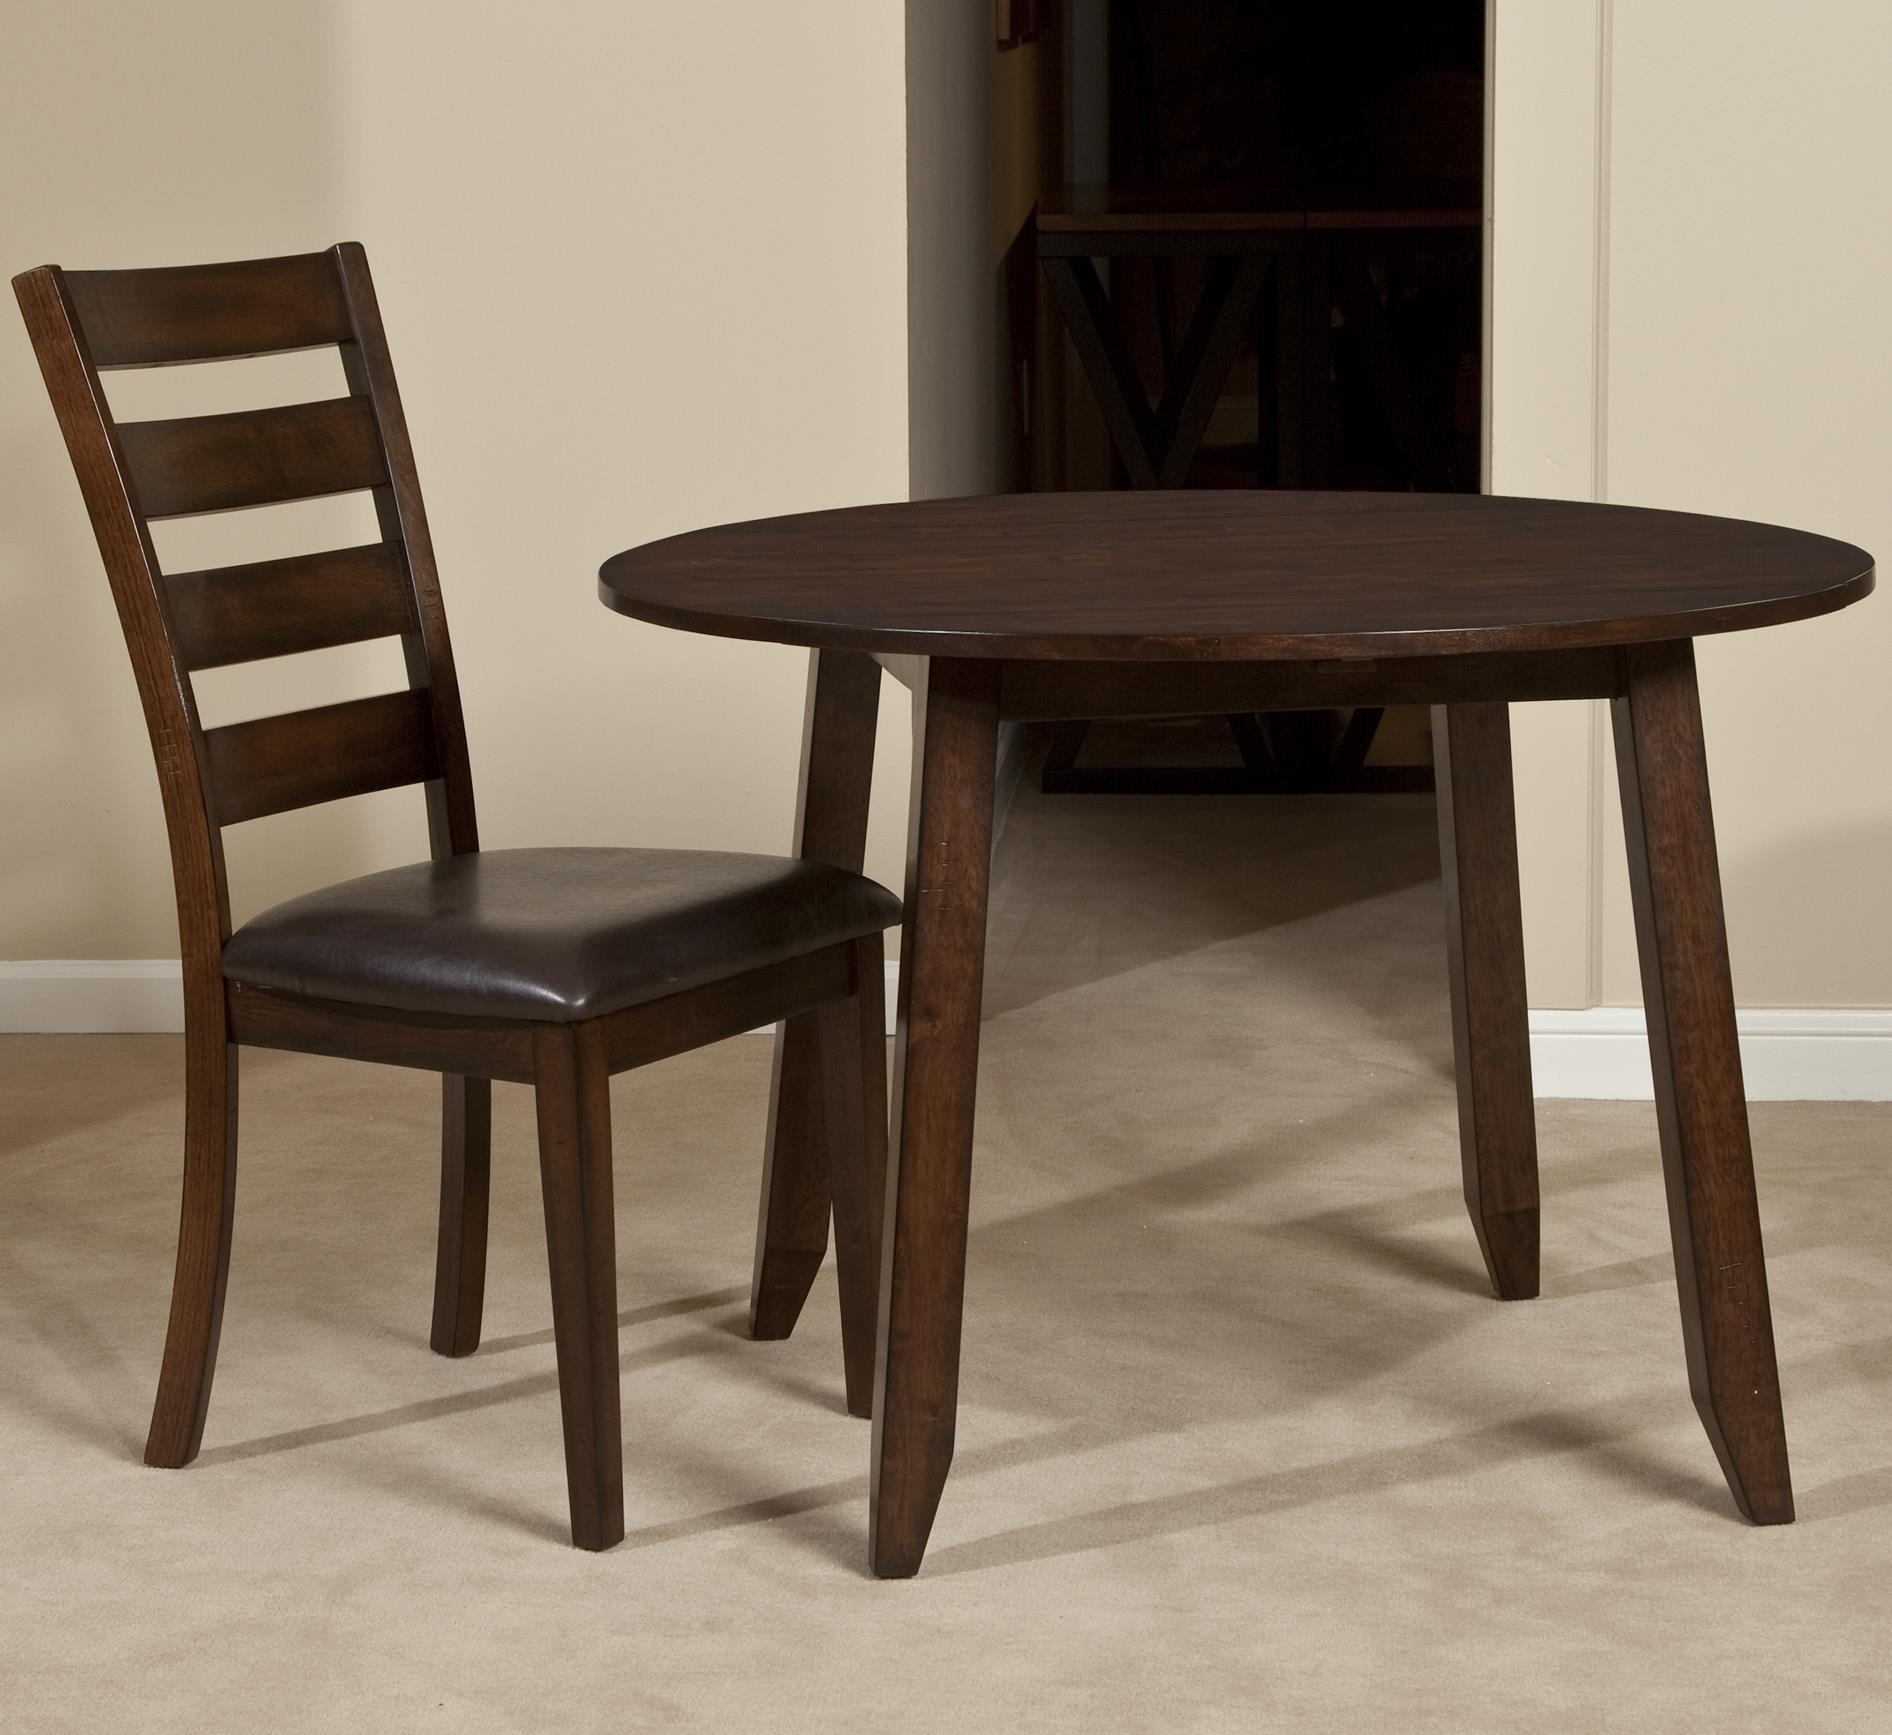 Wooden round top drop leaf dining table by intercon wolf for Round wood dining table with leaf